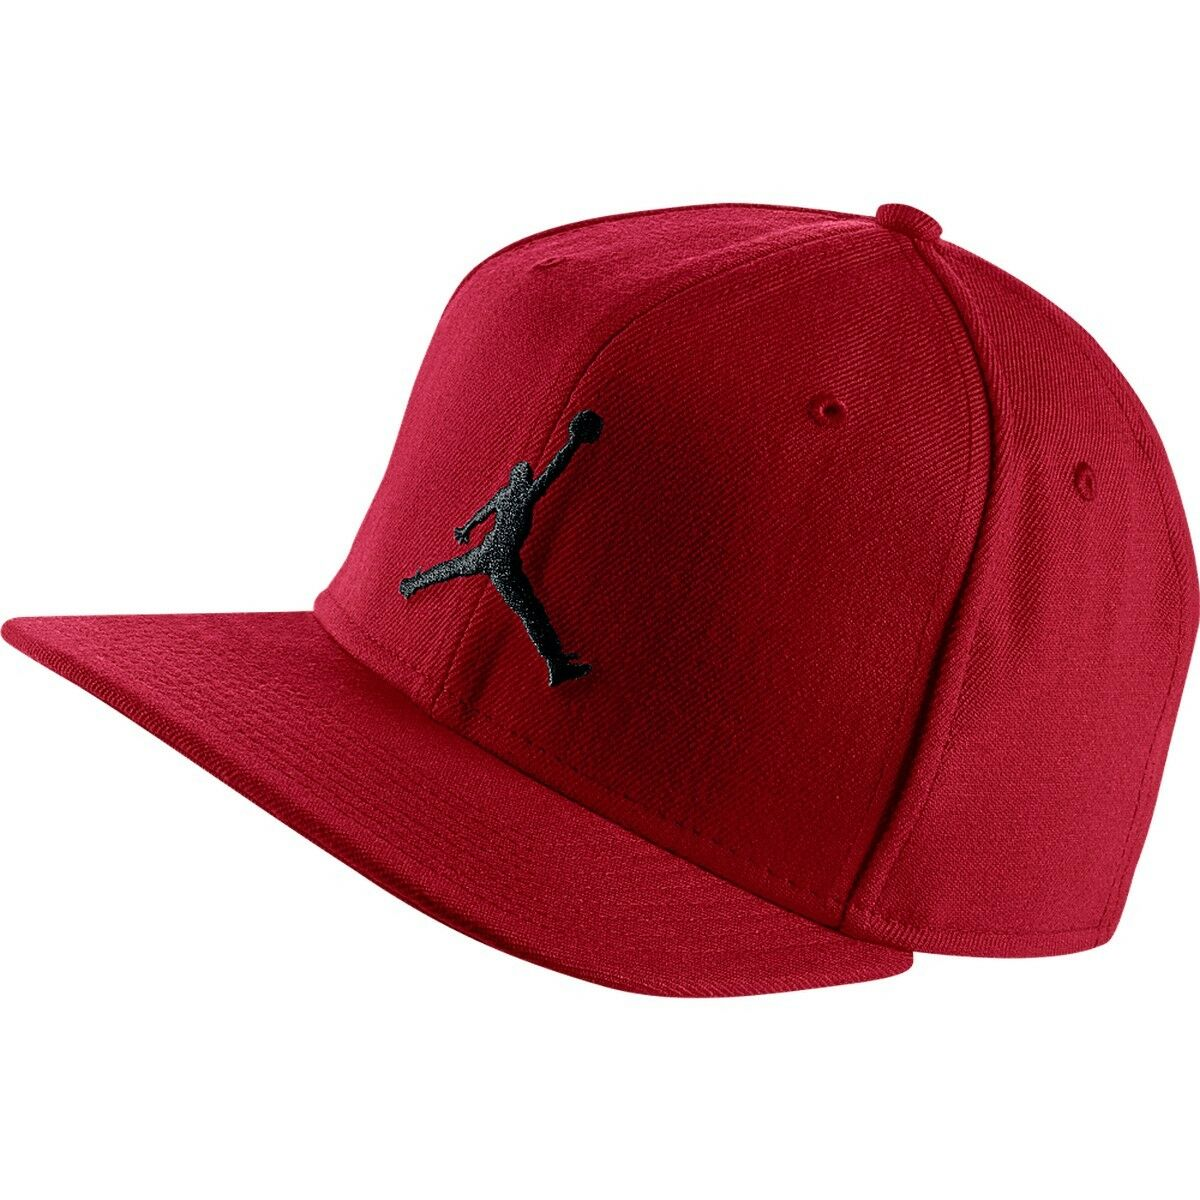 9ecc61d0f3e ... best price nwt nike air jordan jumpman fitted 7 cap hat sizes 8 7  fitted model